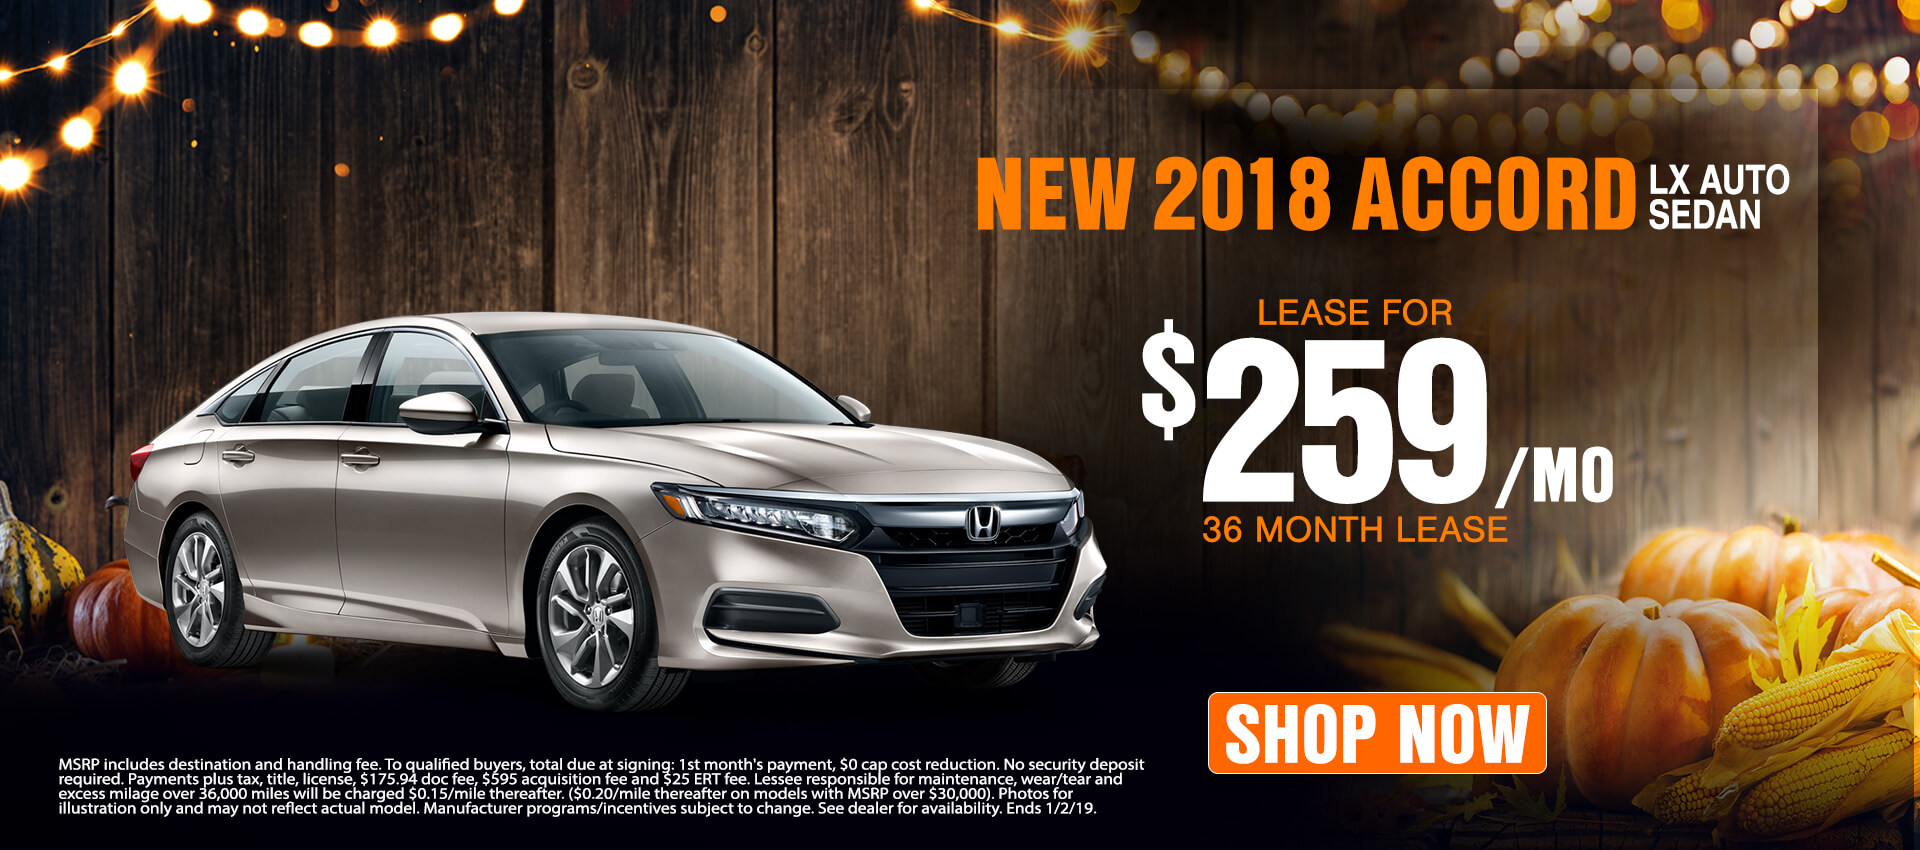 2018 Honda Accord $259